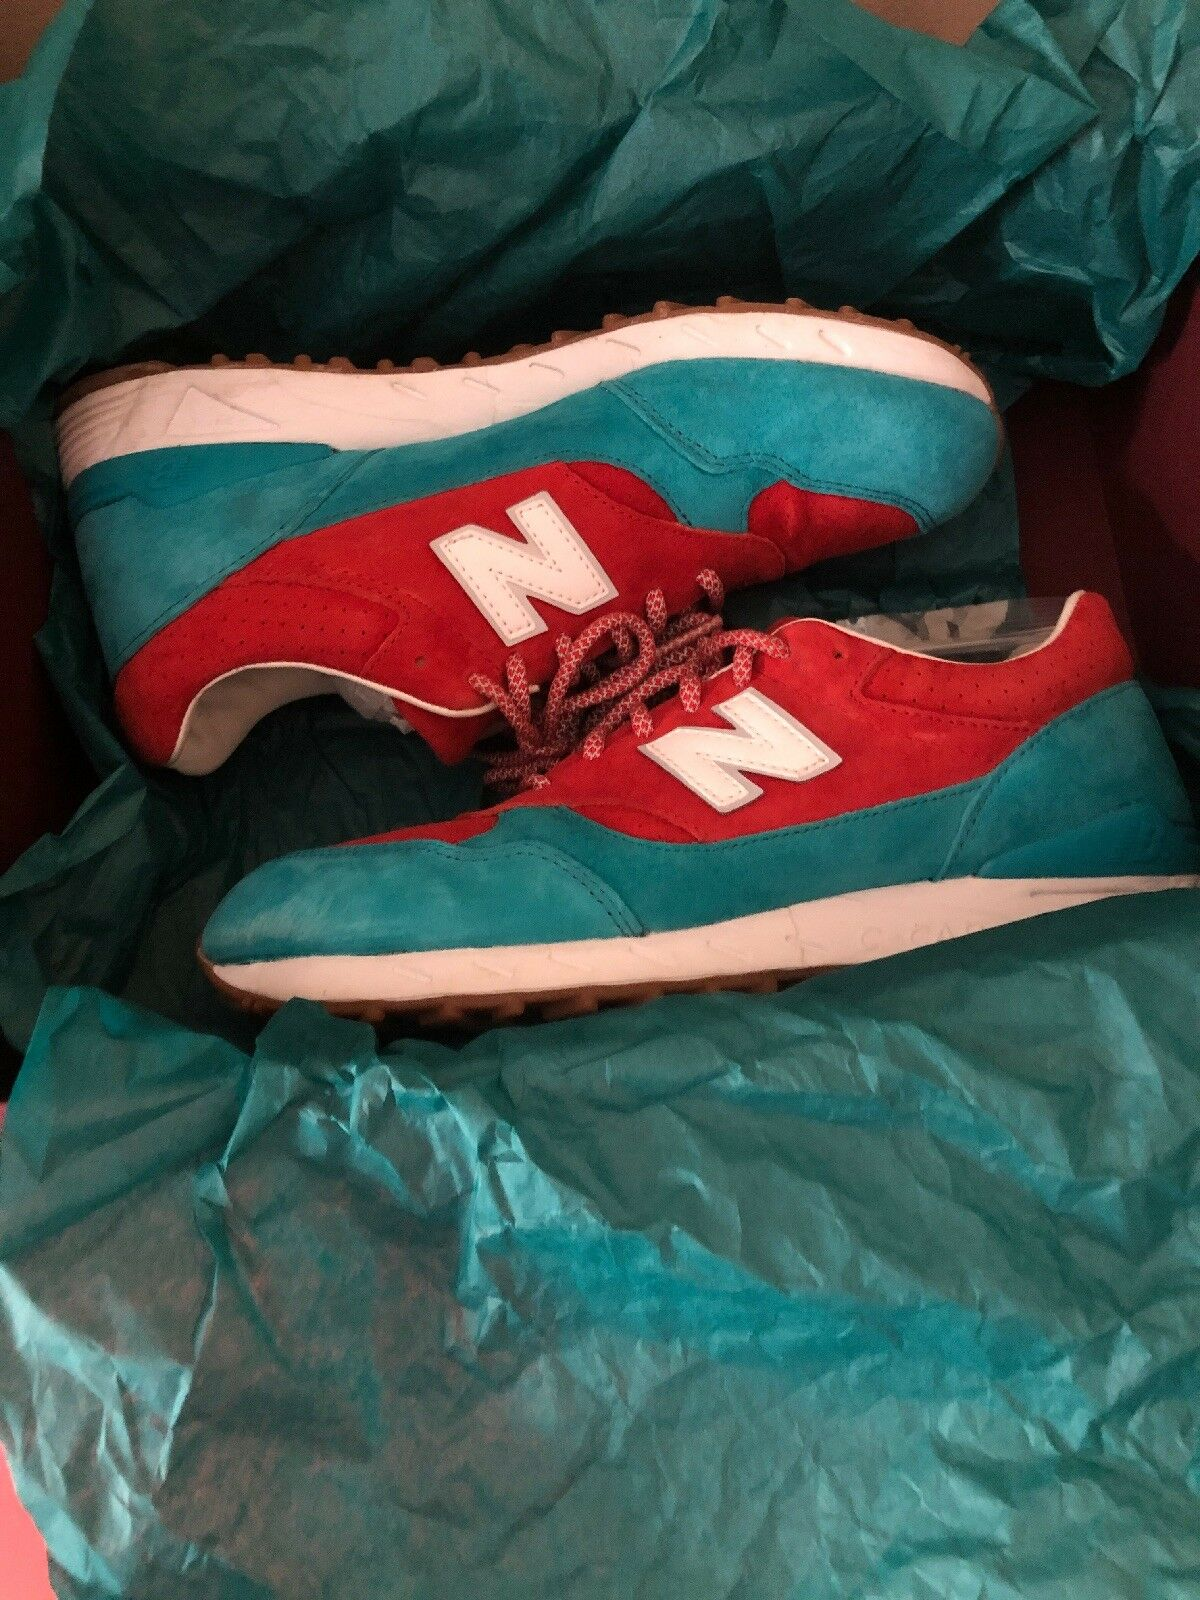 NEW BALANCE CM496CP RED TURQUOISE blueE WHITE GUM CONCEPTS REGATTA SIZE 9.5